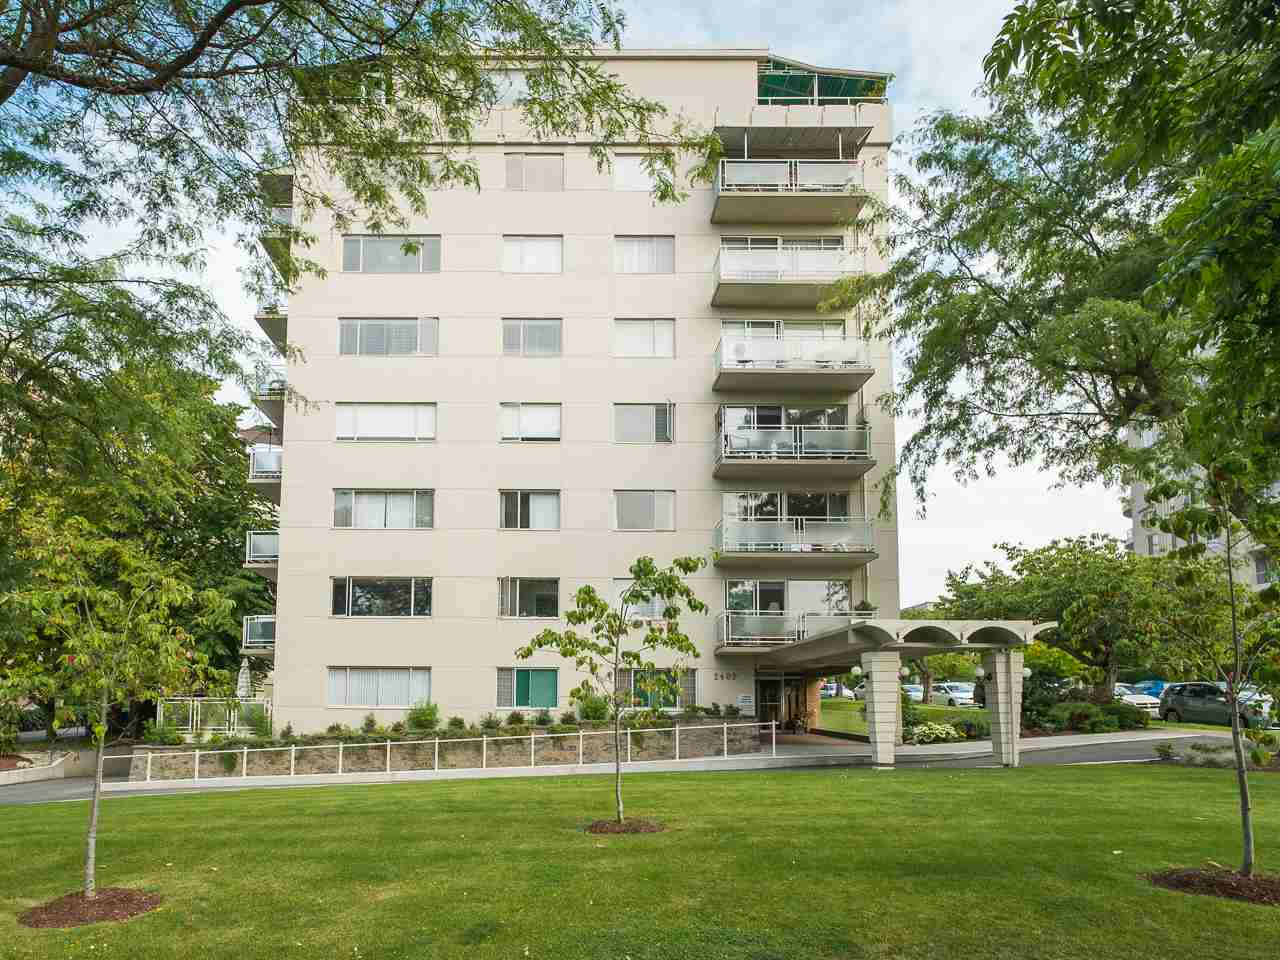 "Main Photo: 503 2409 W 43RD Avenue in Vancouver: Kerrisdale Condo for sale in ""BALSAM COURT"" (Vancouver West)  : MLS(r) # R2177625"